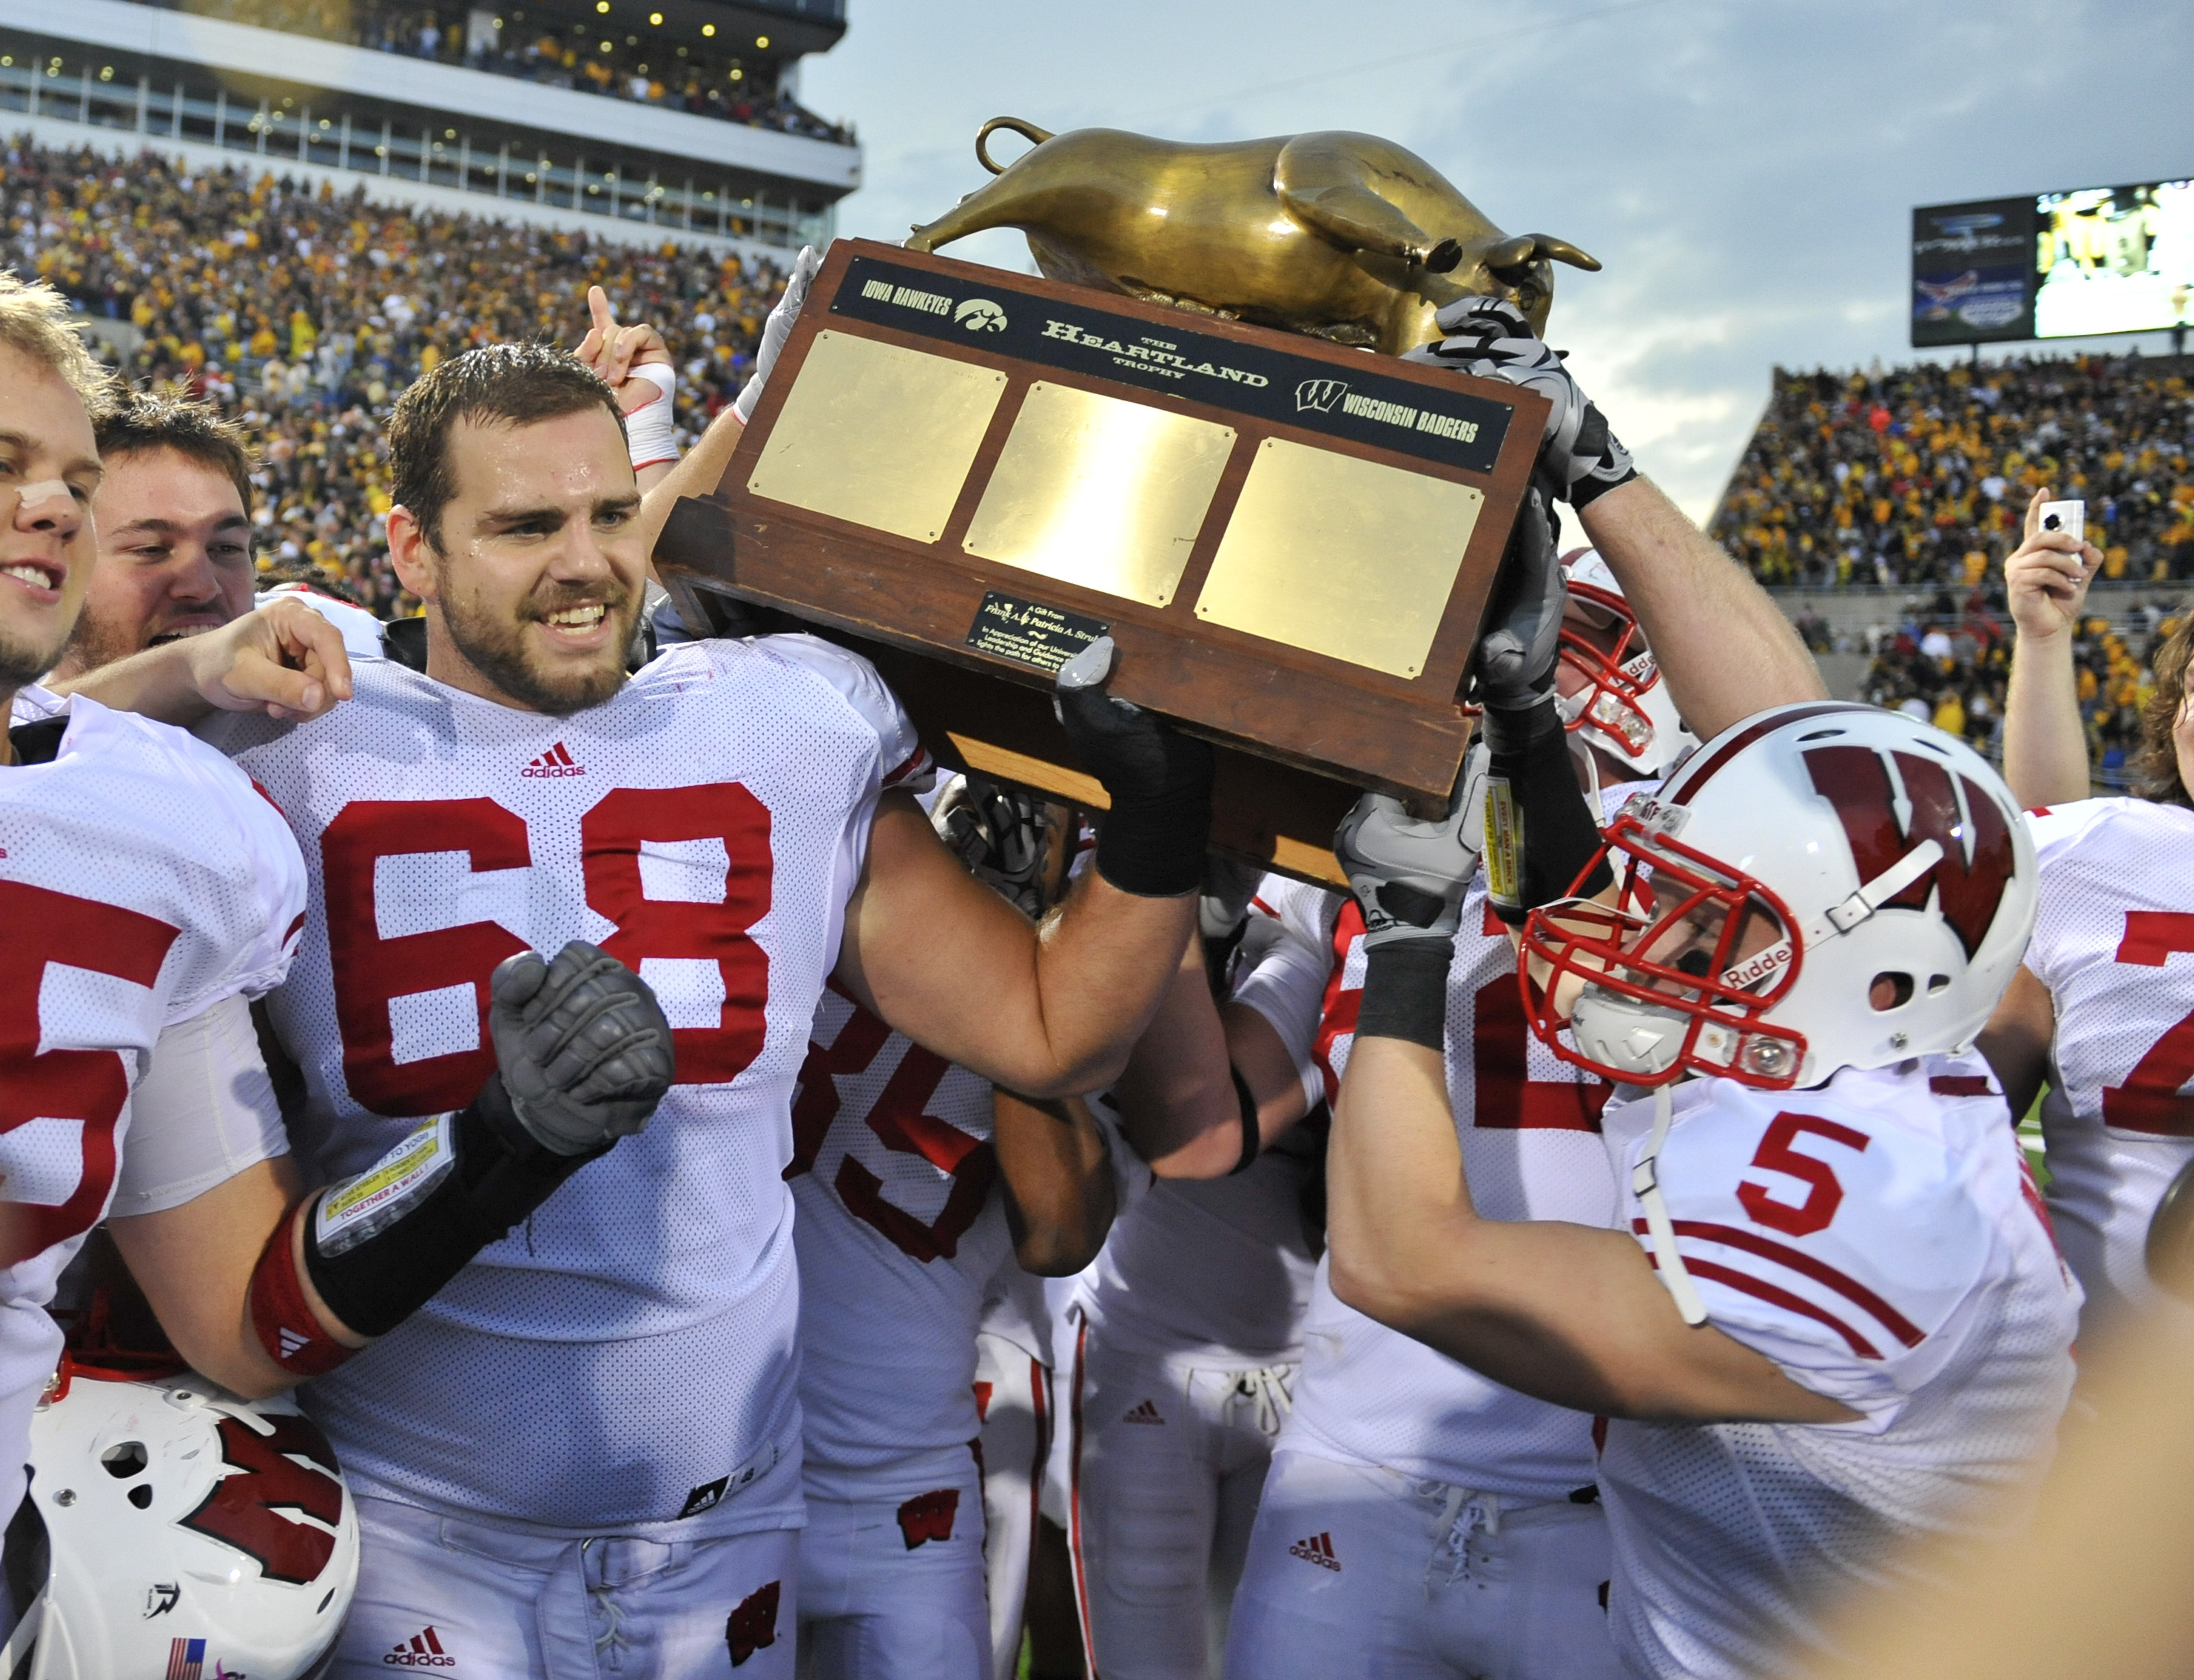 IOWA CITY, IA - OCTOBER 23: Offensive lineman Gabe Carimi #68 for the Wisconsin Badger holds the Heartland Trophy with his teammates as they celebrate their victory of the University of Iowa Hawkeyes at Kinnick Stadium on October 23, 2010 in Iowa City, Io